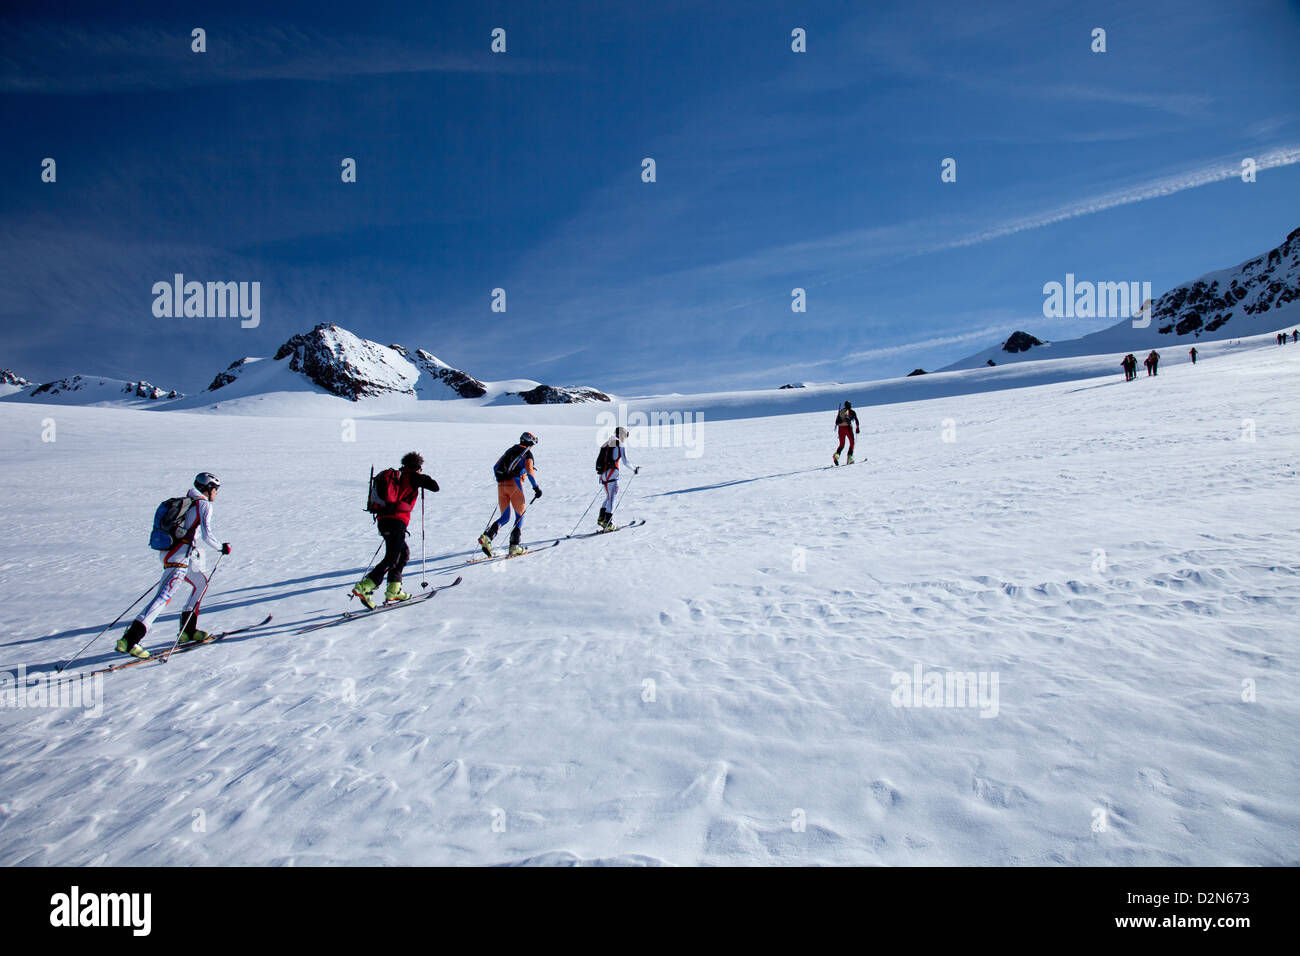 Ski touring in the Alps, ascent to Punta San Matteo, on the border of Lombardia and Trentino-Alto Adige, Italy, - Stock Image